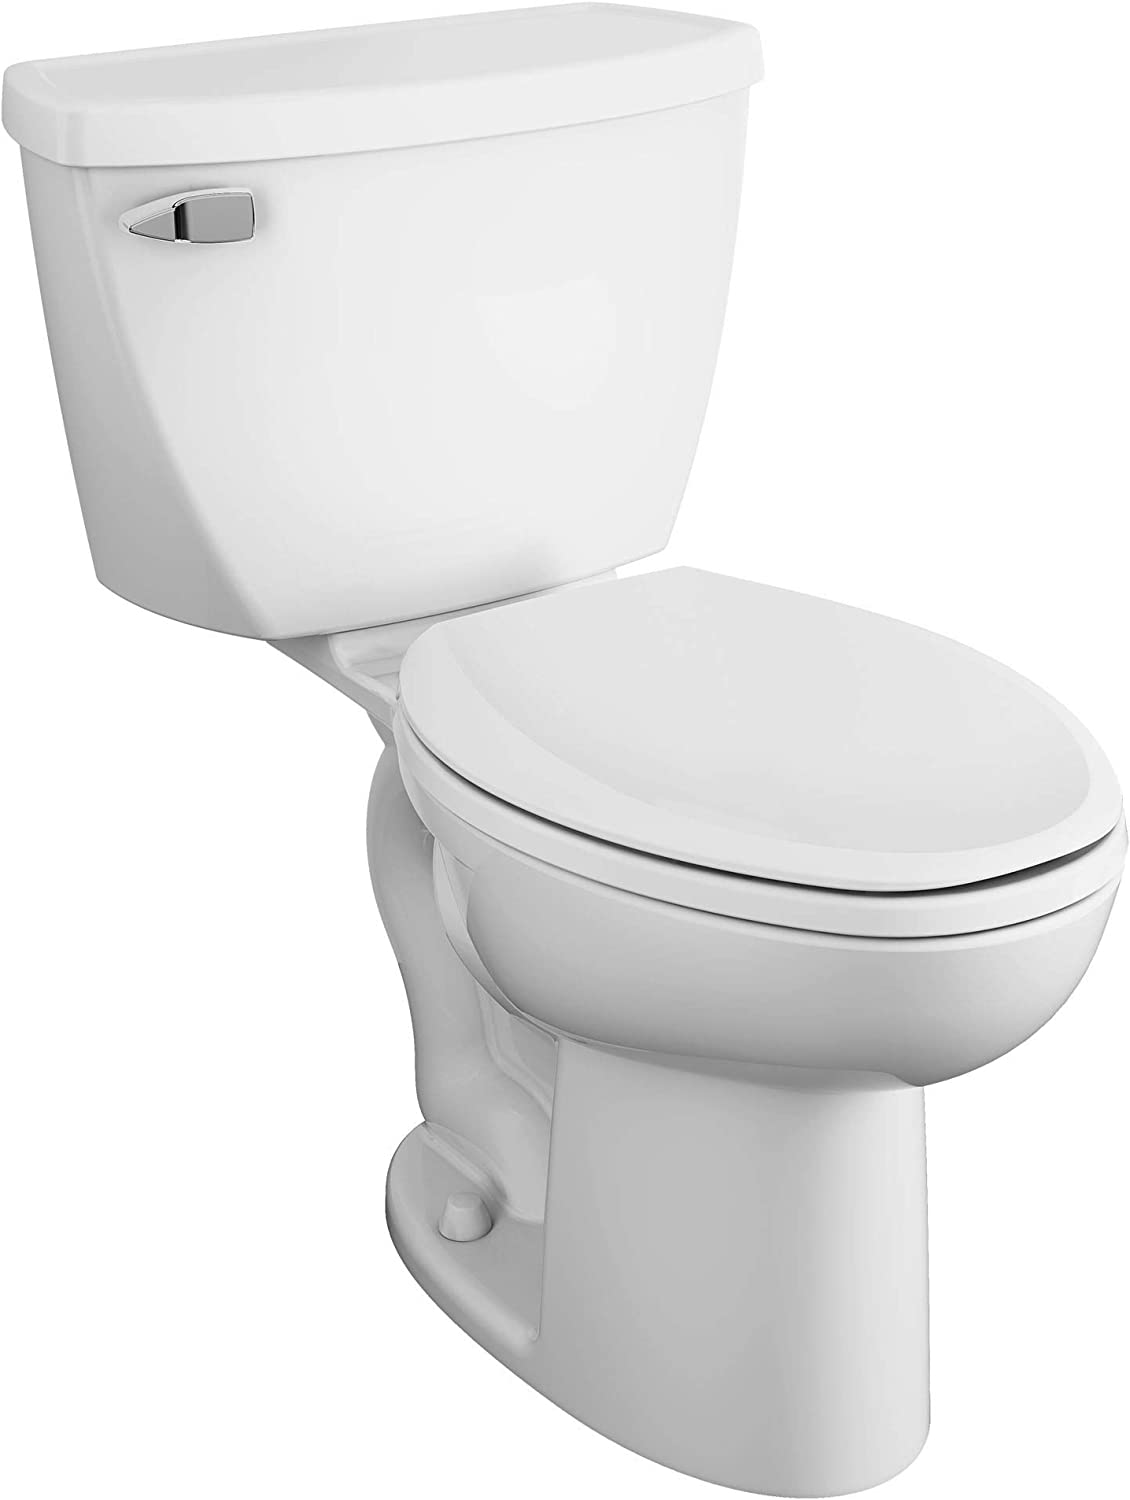 best comfort height toilets: American Standard 2467016.020 Cadet Right Height Toilet